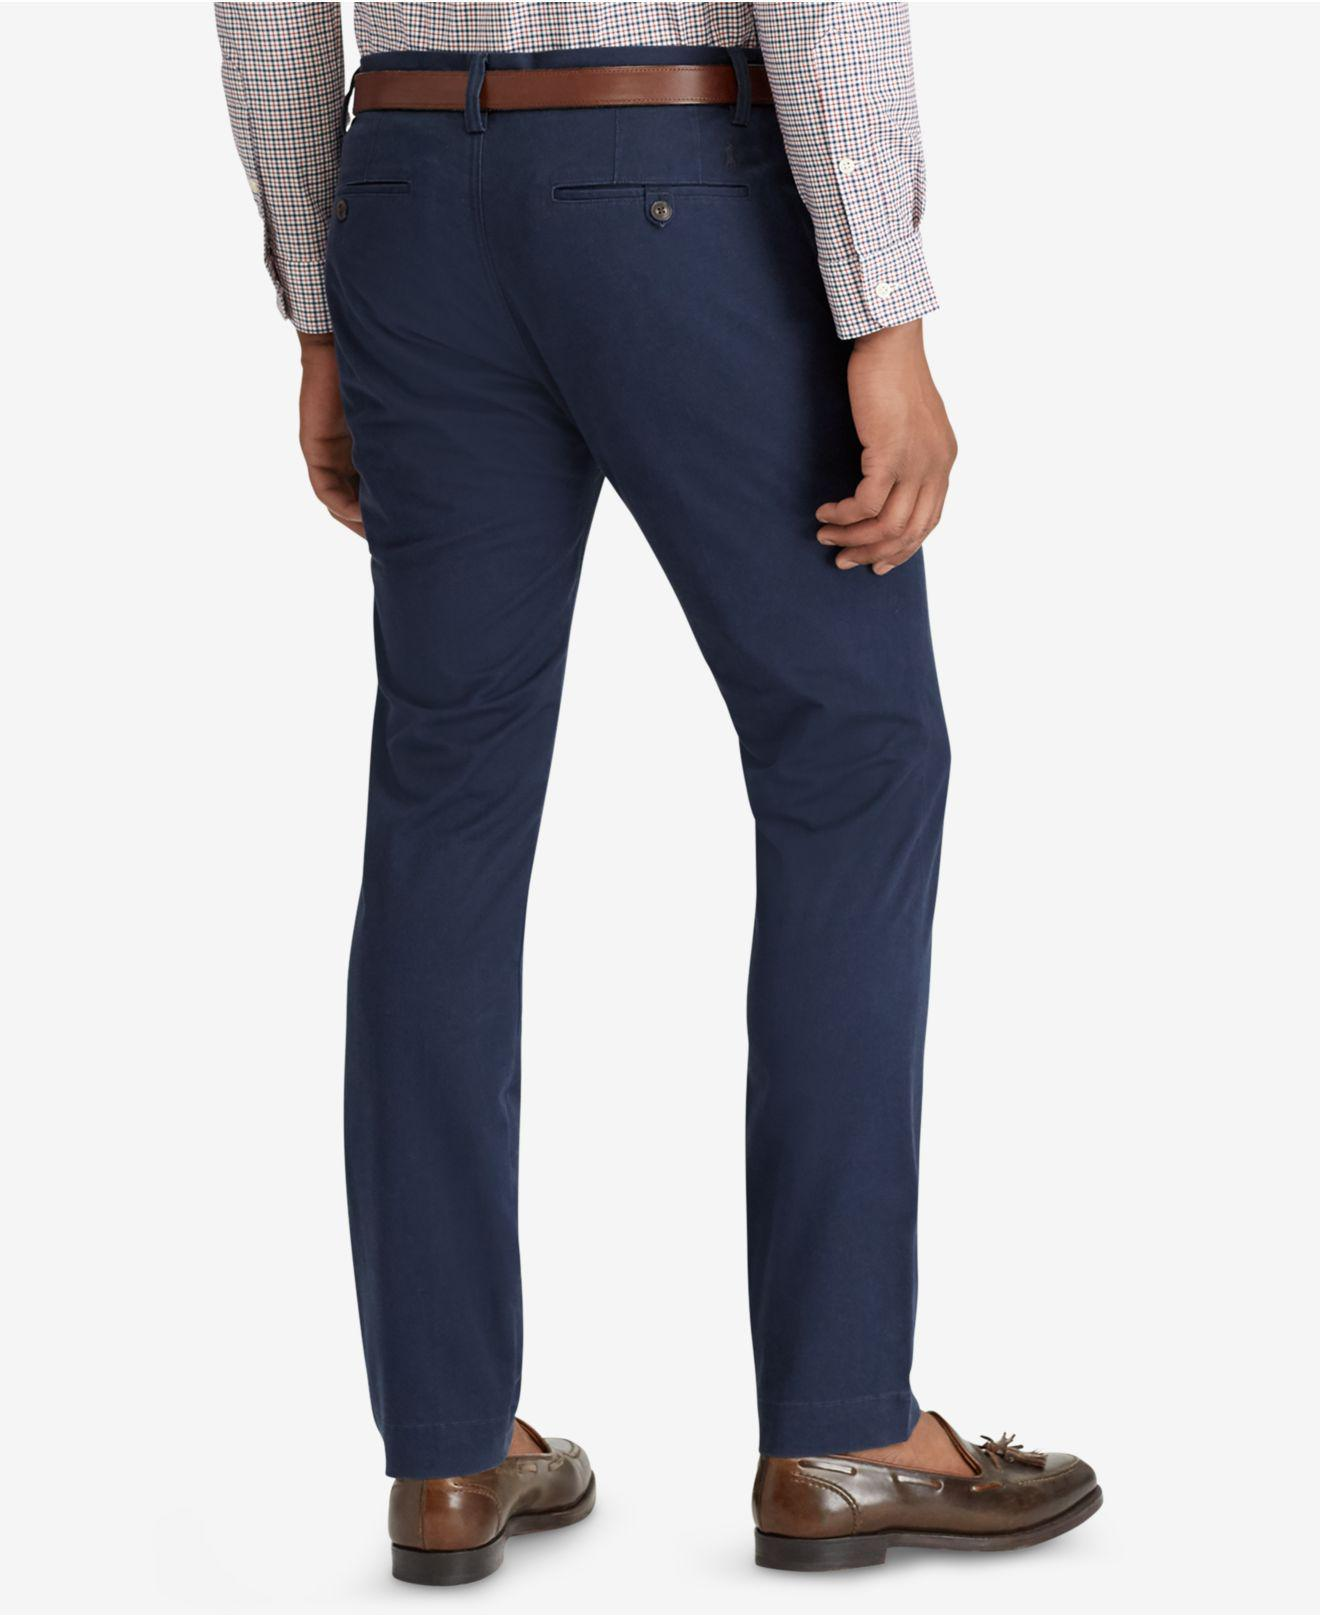 24d6e5574ee81 Lyst - Polo Ralph Lauren Men s Straight-fit Bedford Stretch Chino Pants in  Blue for Men